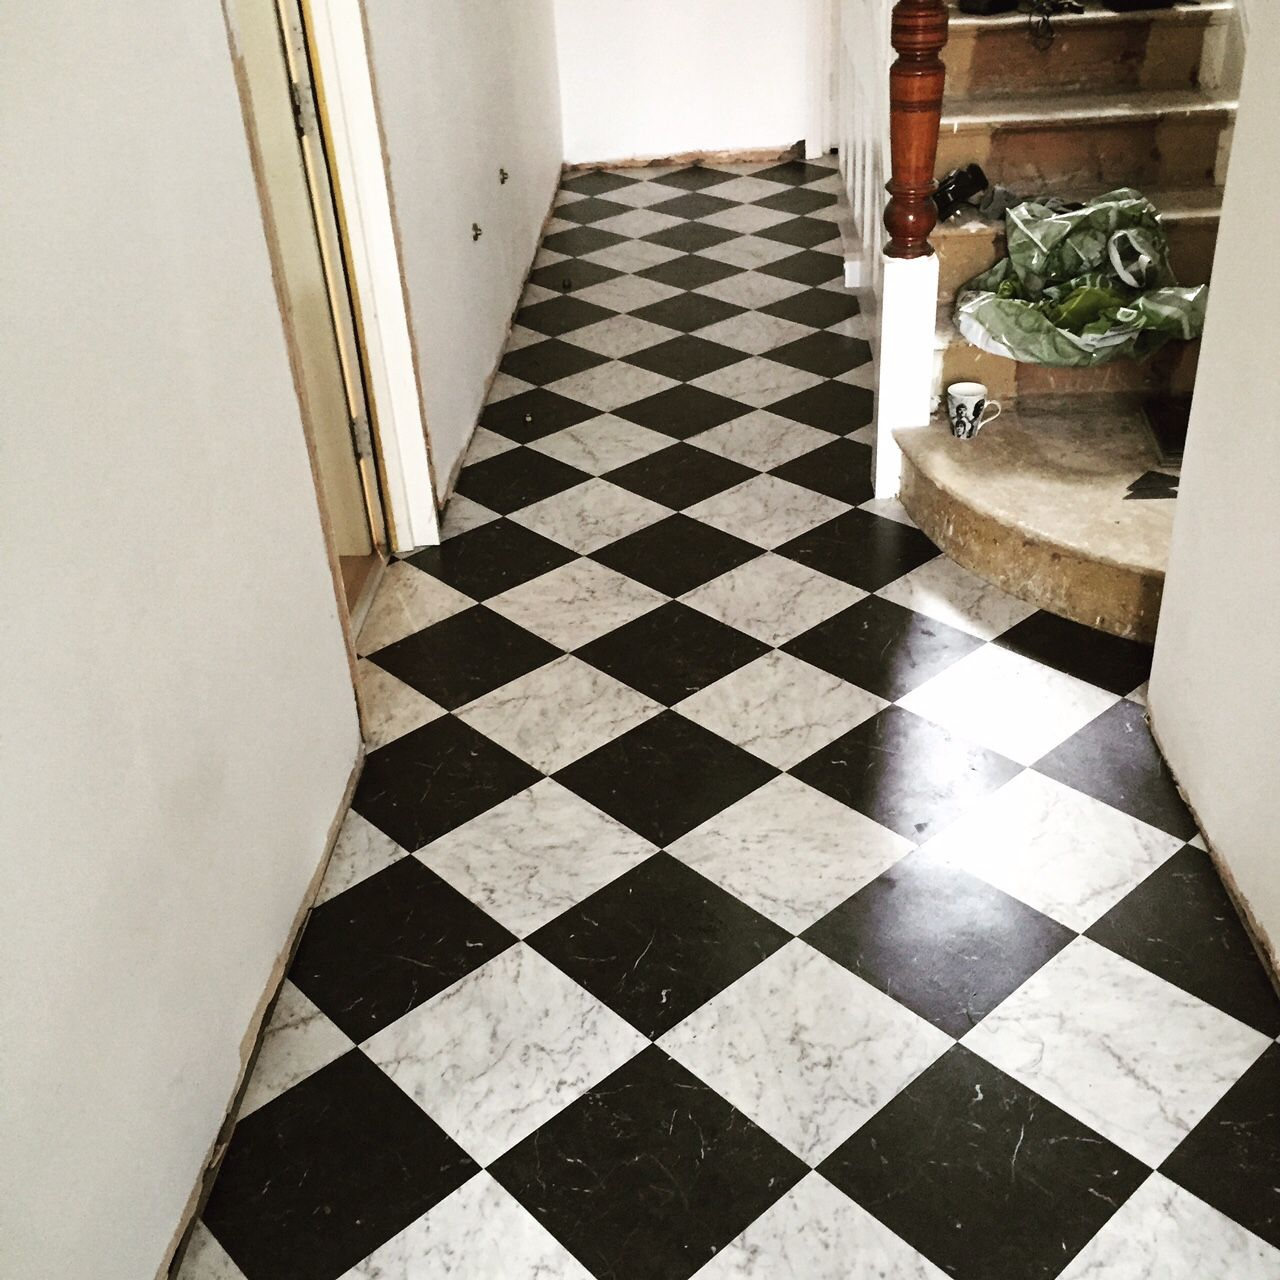 Black Vinyl Kitchen Flooring: Karndean Knight Tile Black And White Marble